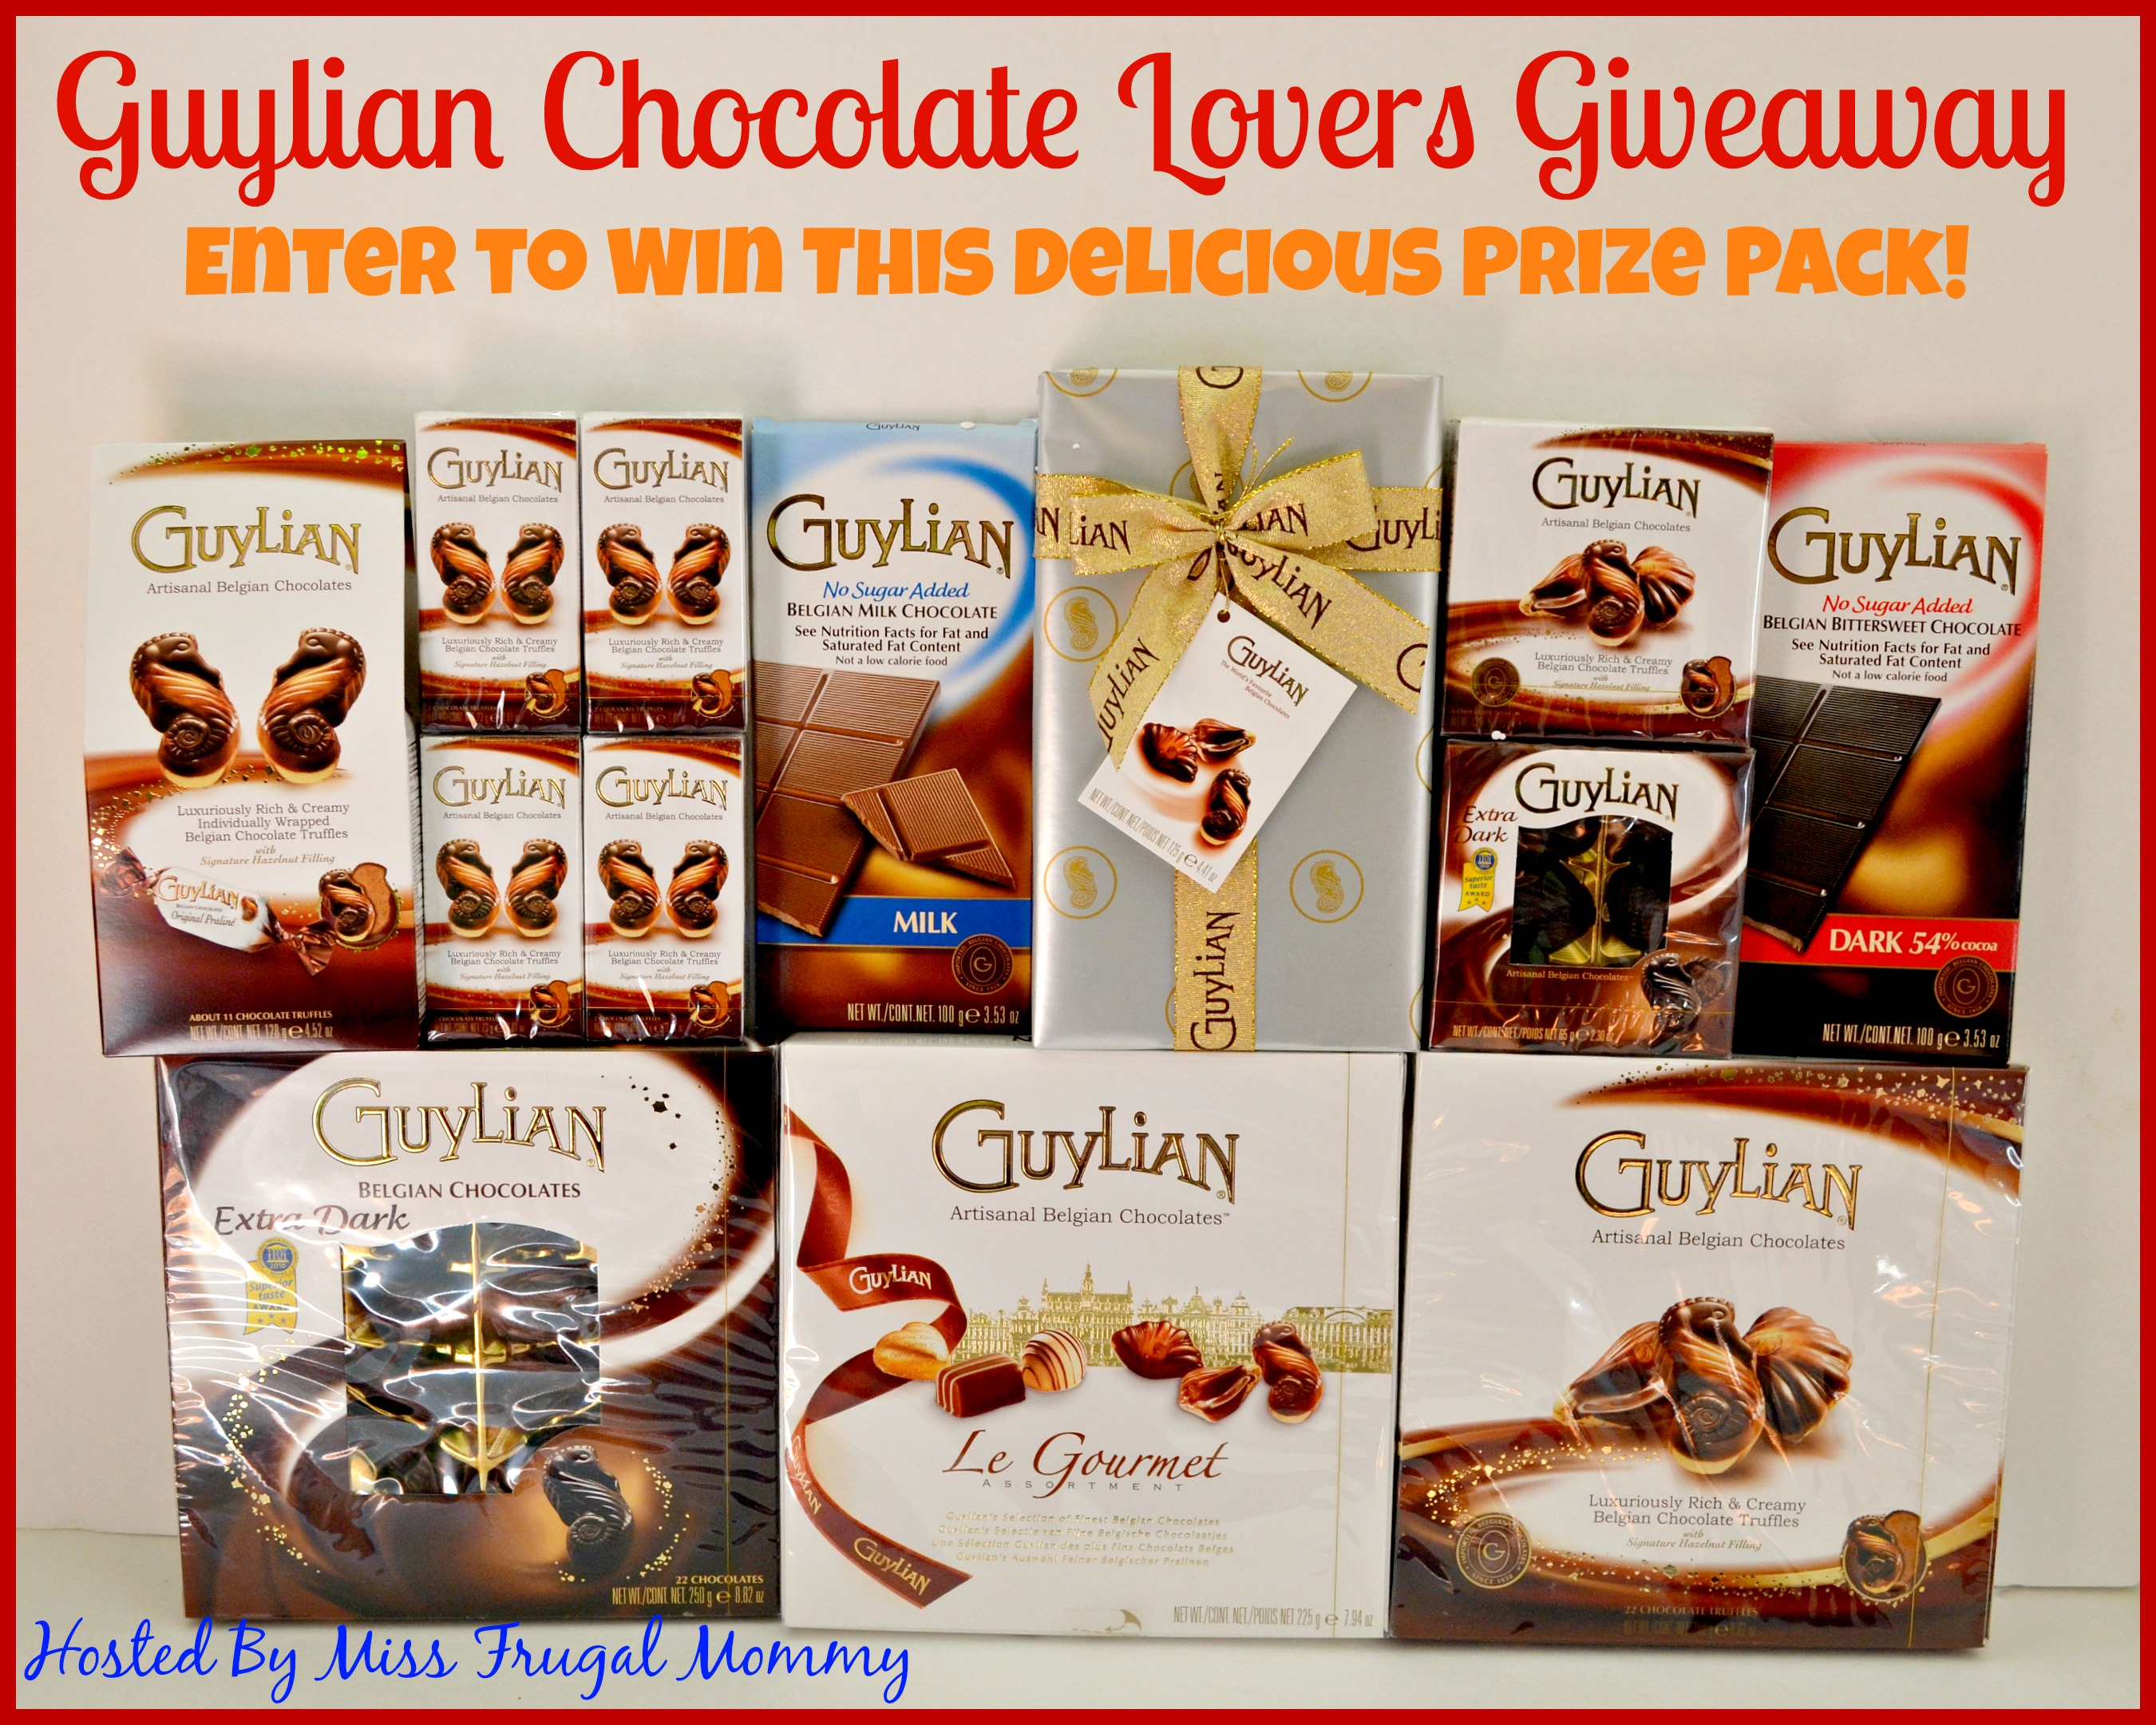 Guylian Chocolate Lovers Giveaway - Enter Online Sweeps